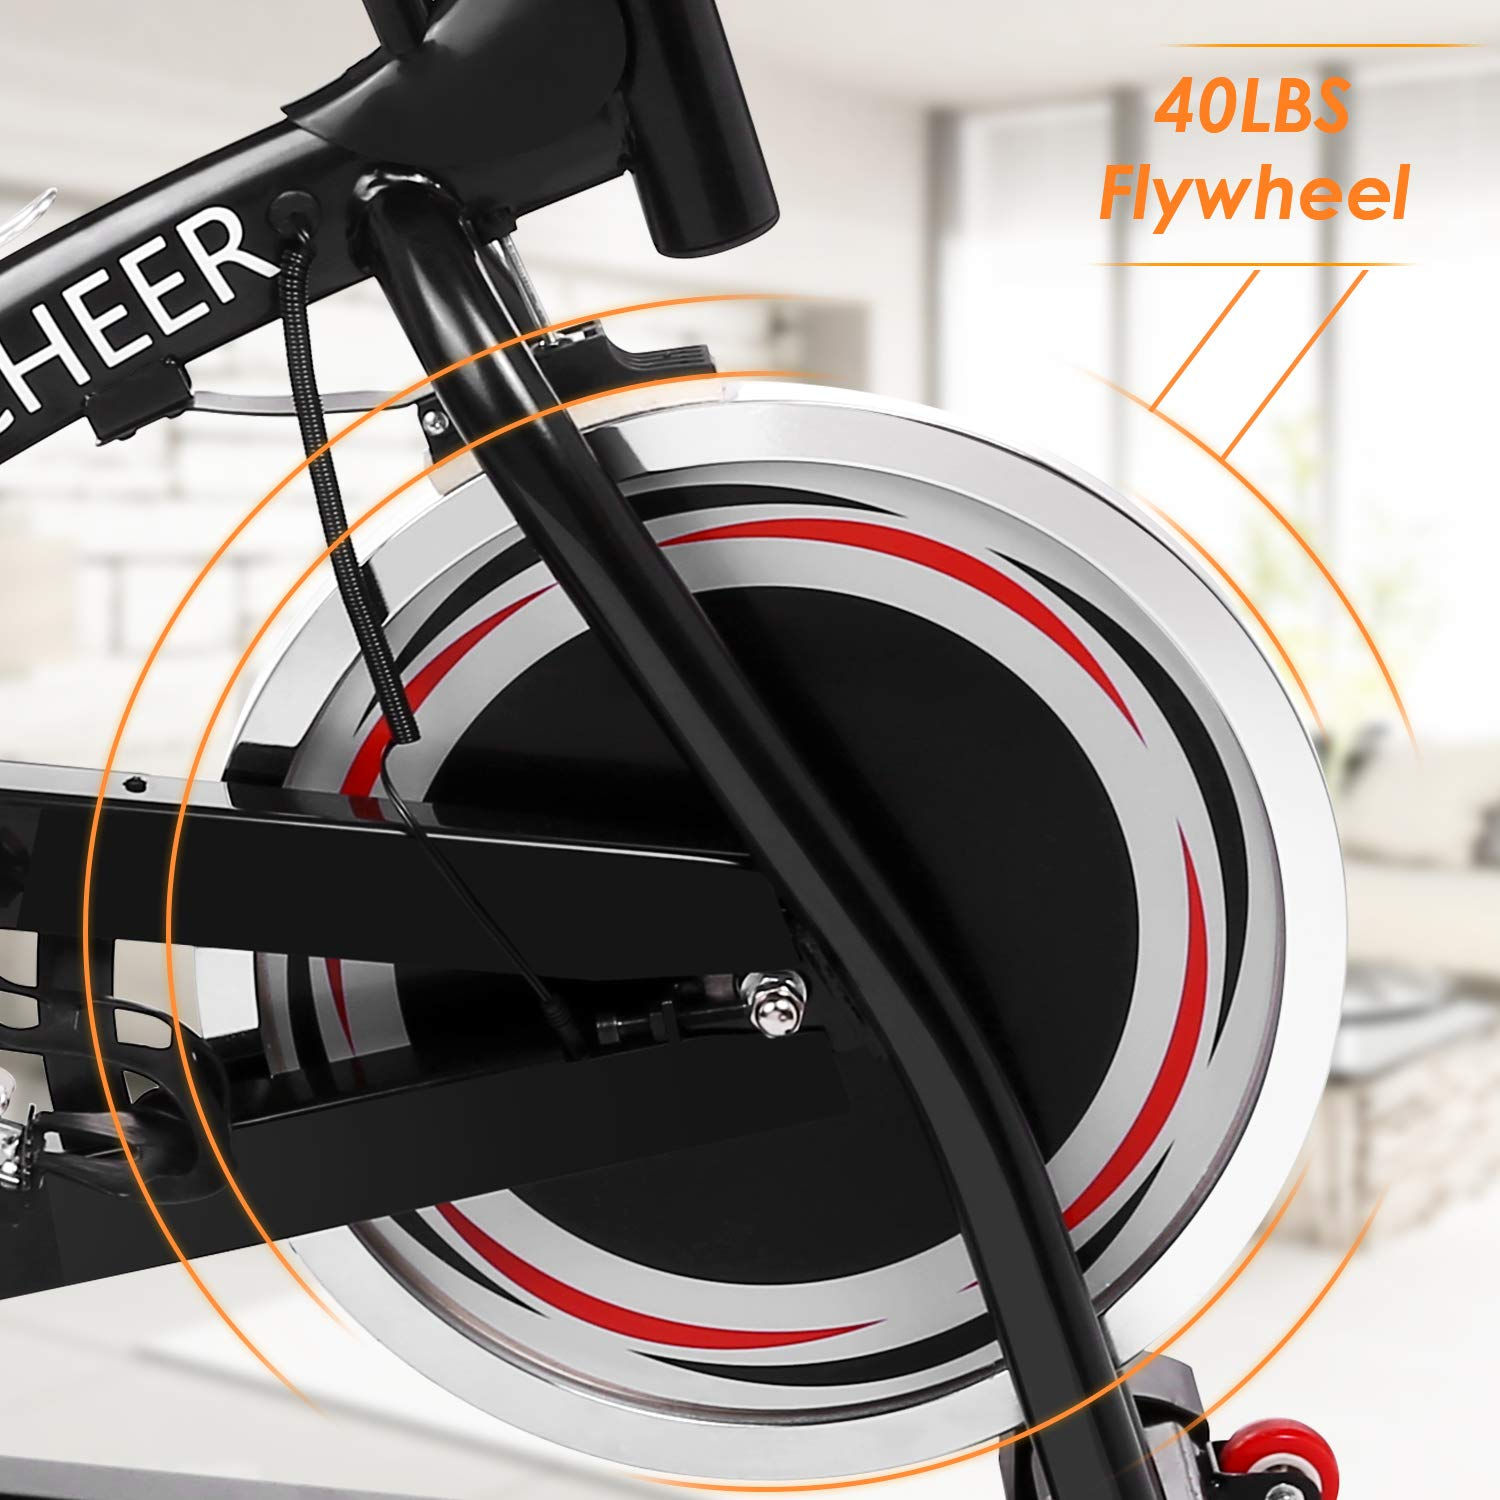 ANCHEER Stationary Bike, 40 LBS Flywheel Belt Drive Indoor Cycling Exercise Bike with Pulse, Elbow Tray (Model: ANCHEER-A5001) (Black) by ANCHEER (Image #2)